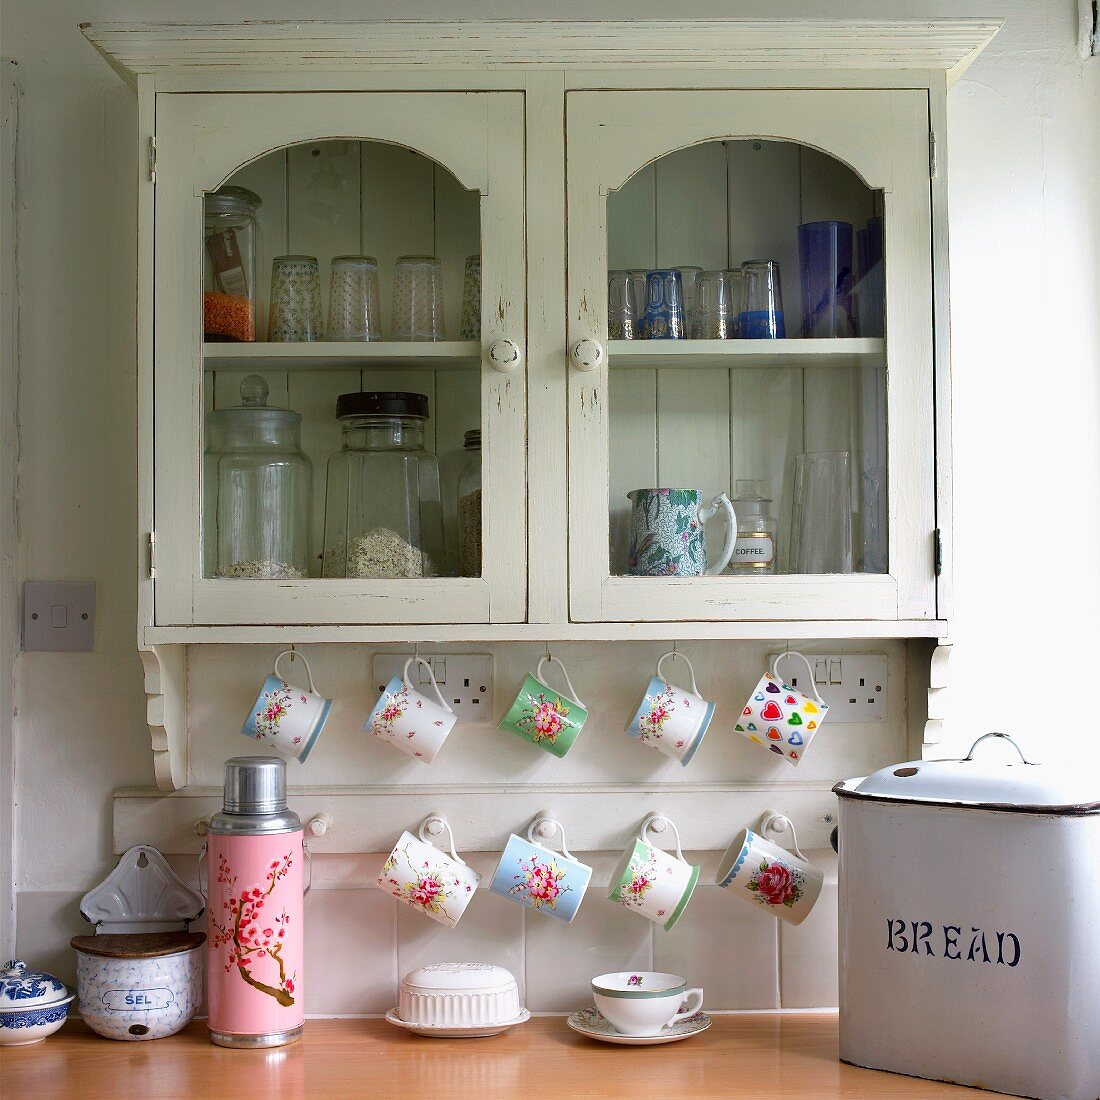 Floral patterns on thermos and cups hanging from rack below old, wall-mounted cabinet in vintage kitchen